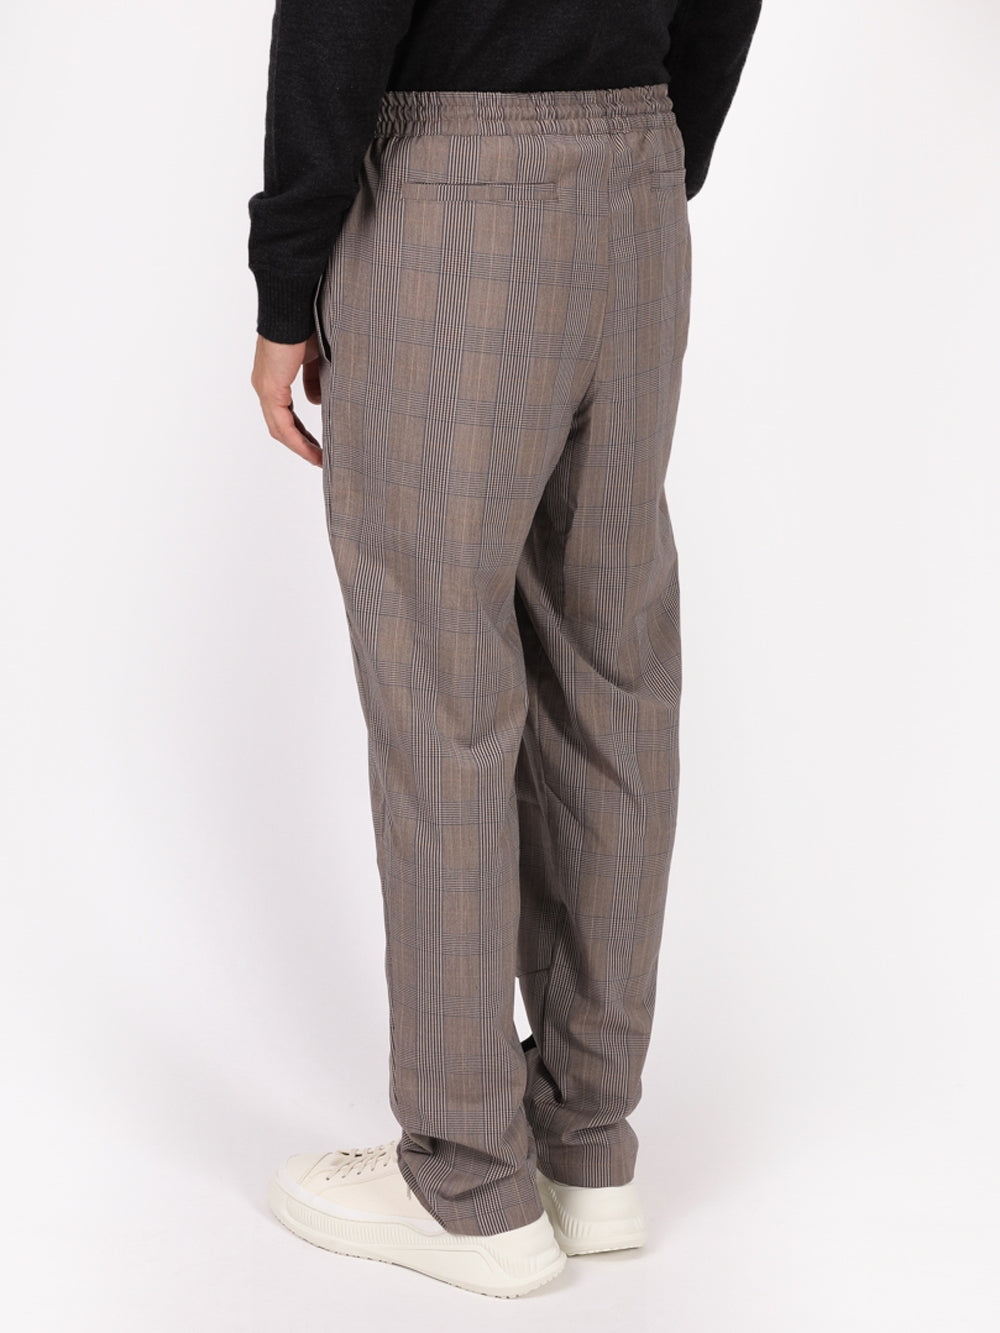 Grey Rhelaxed Suiting Pants